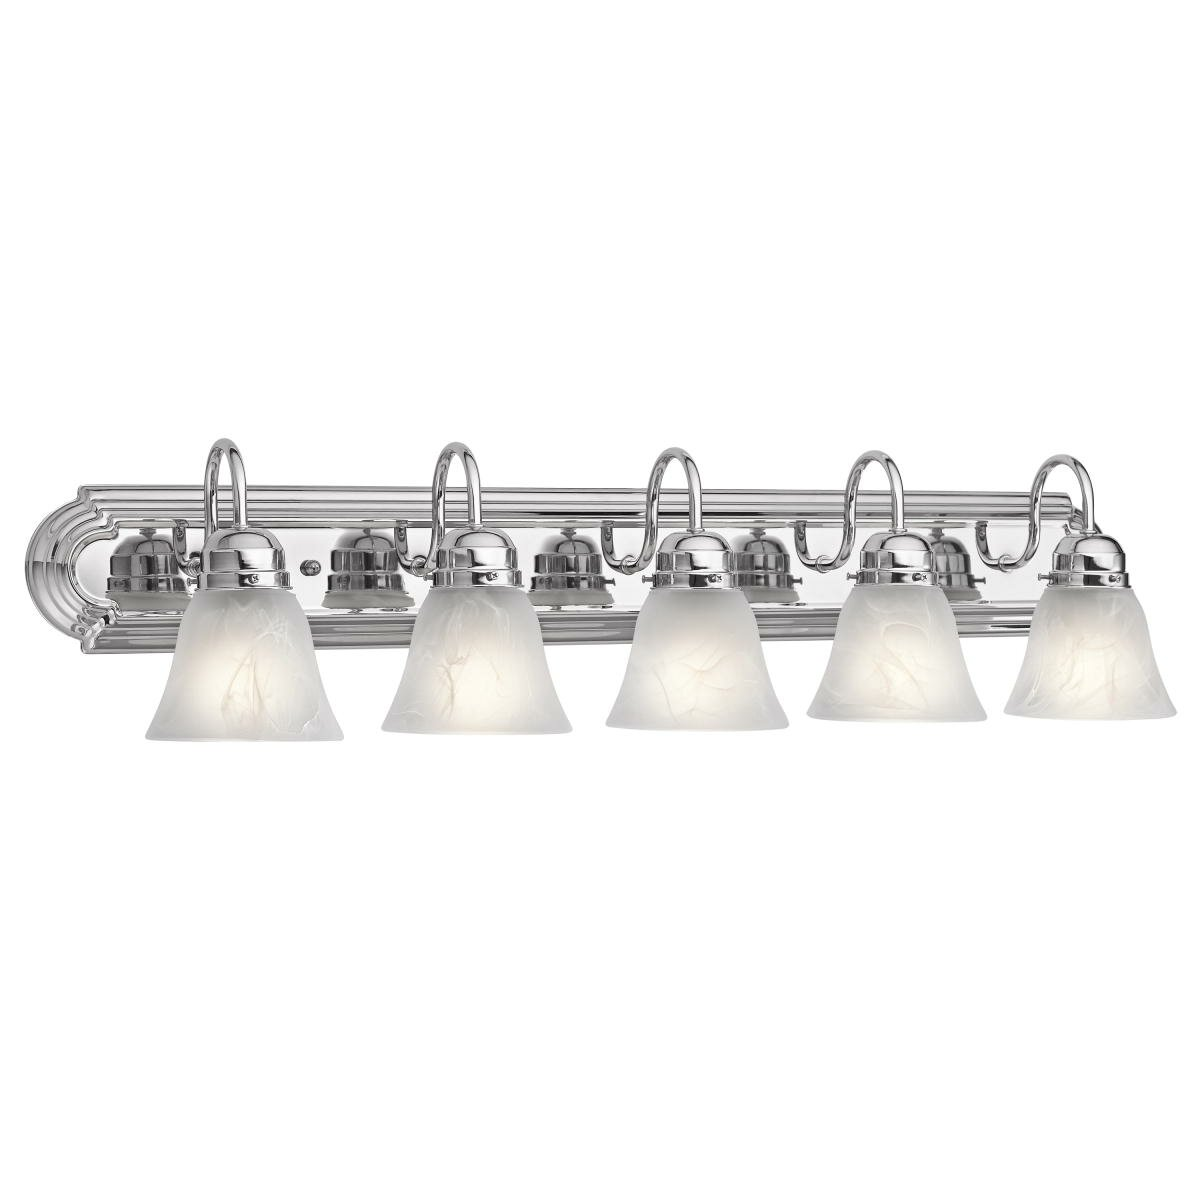 5 Light Bath Vanity Light